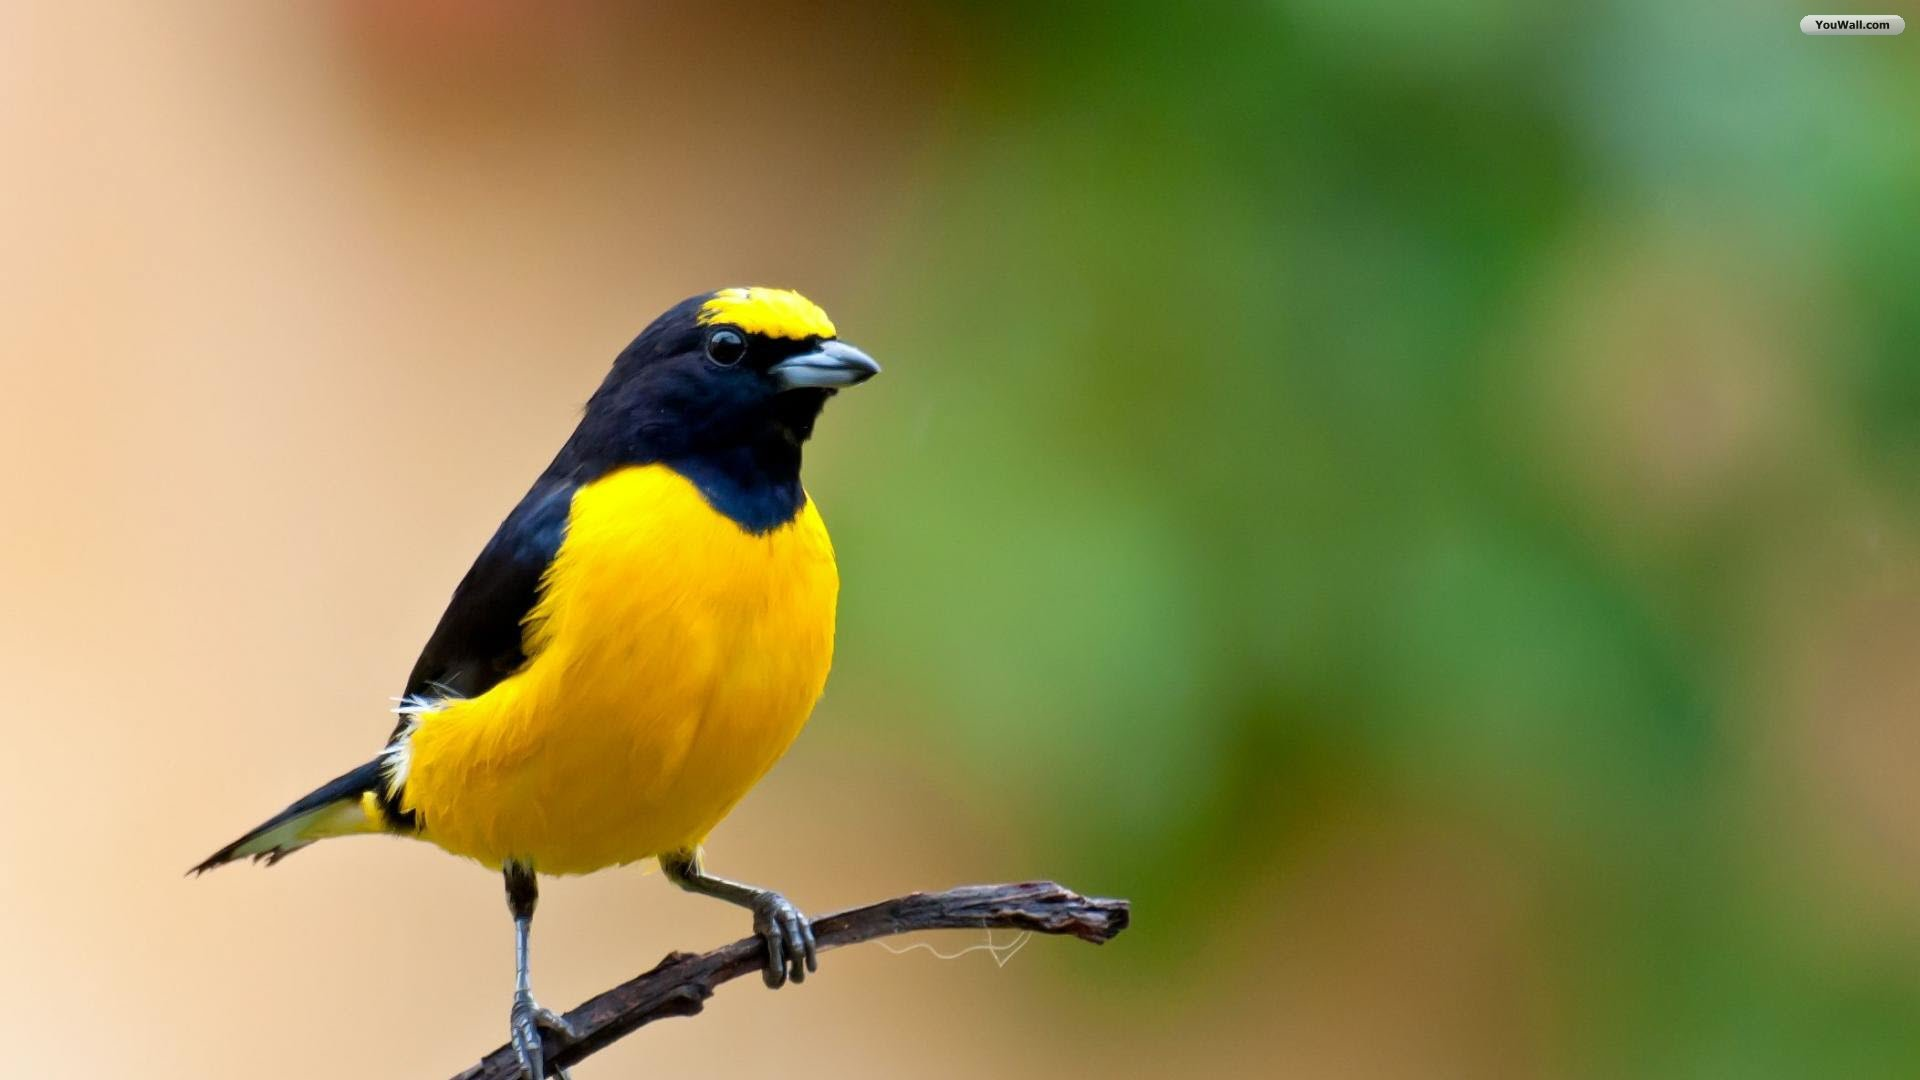 Yellow Bird Wallpapers